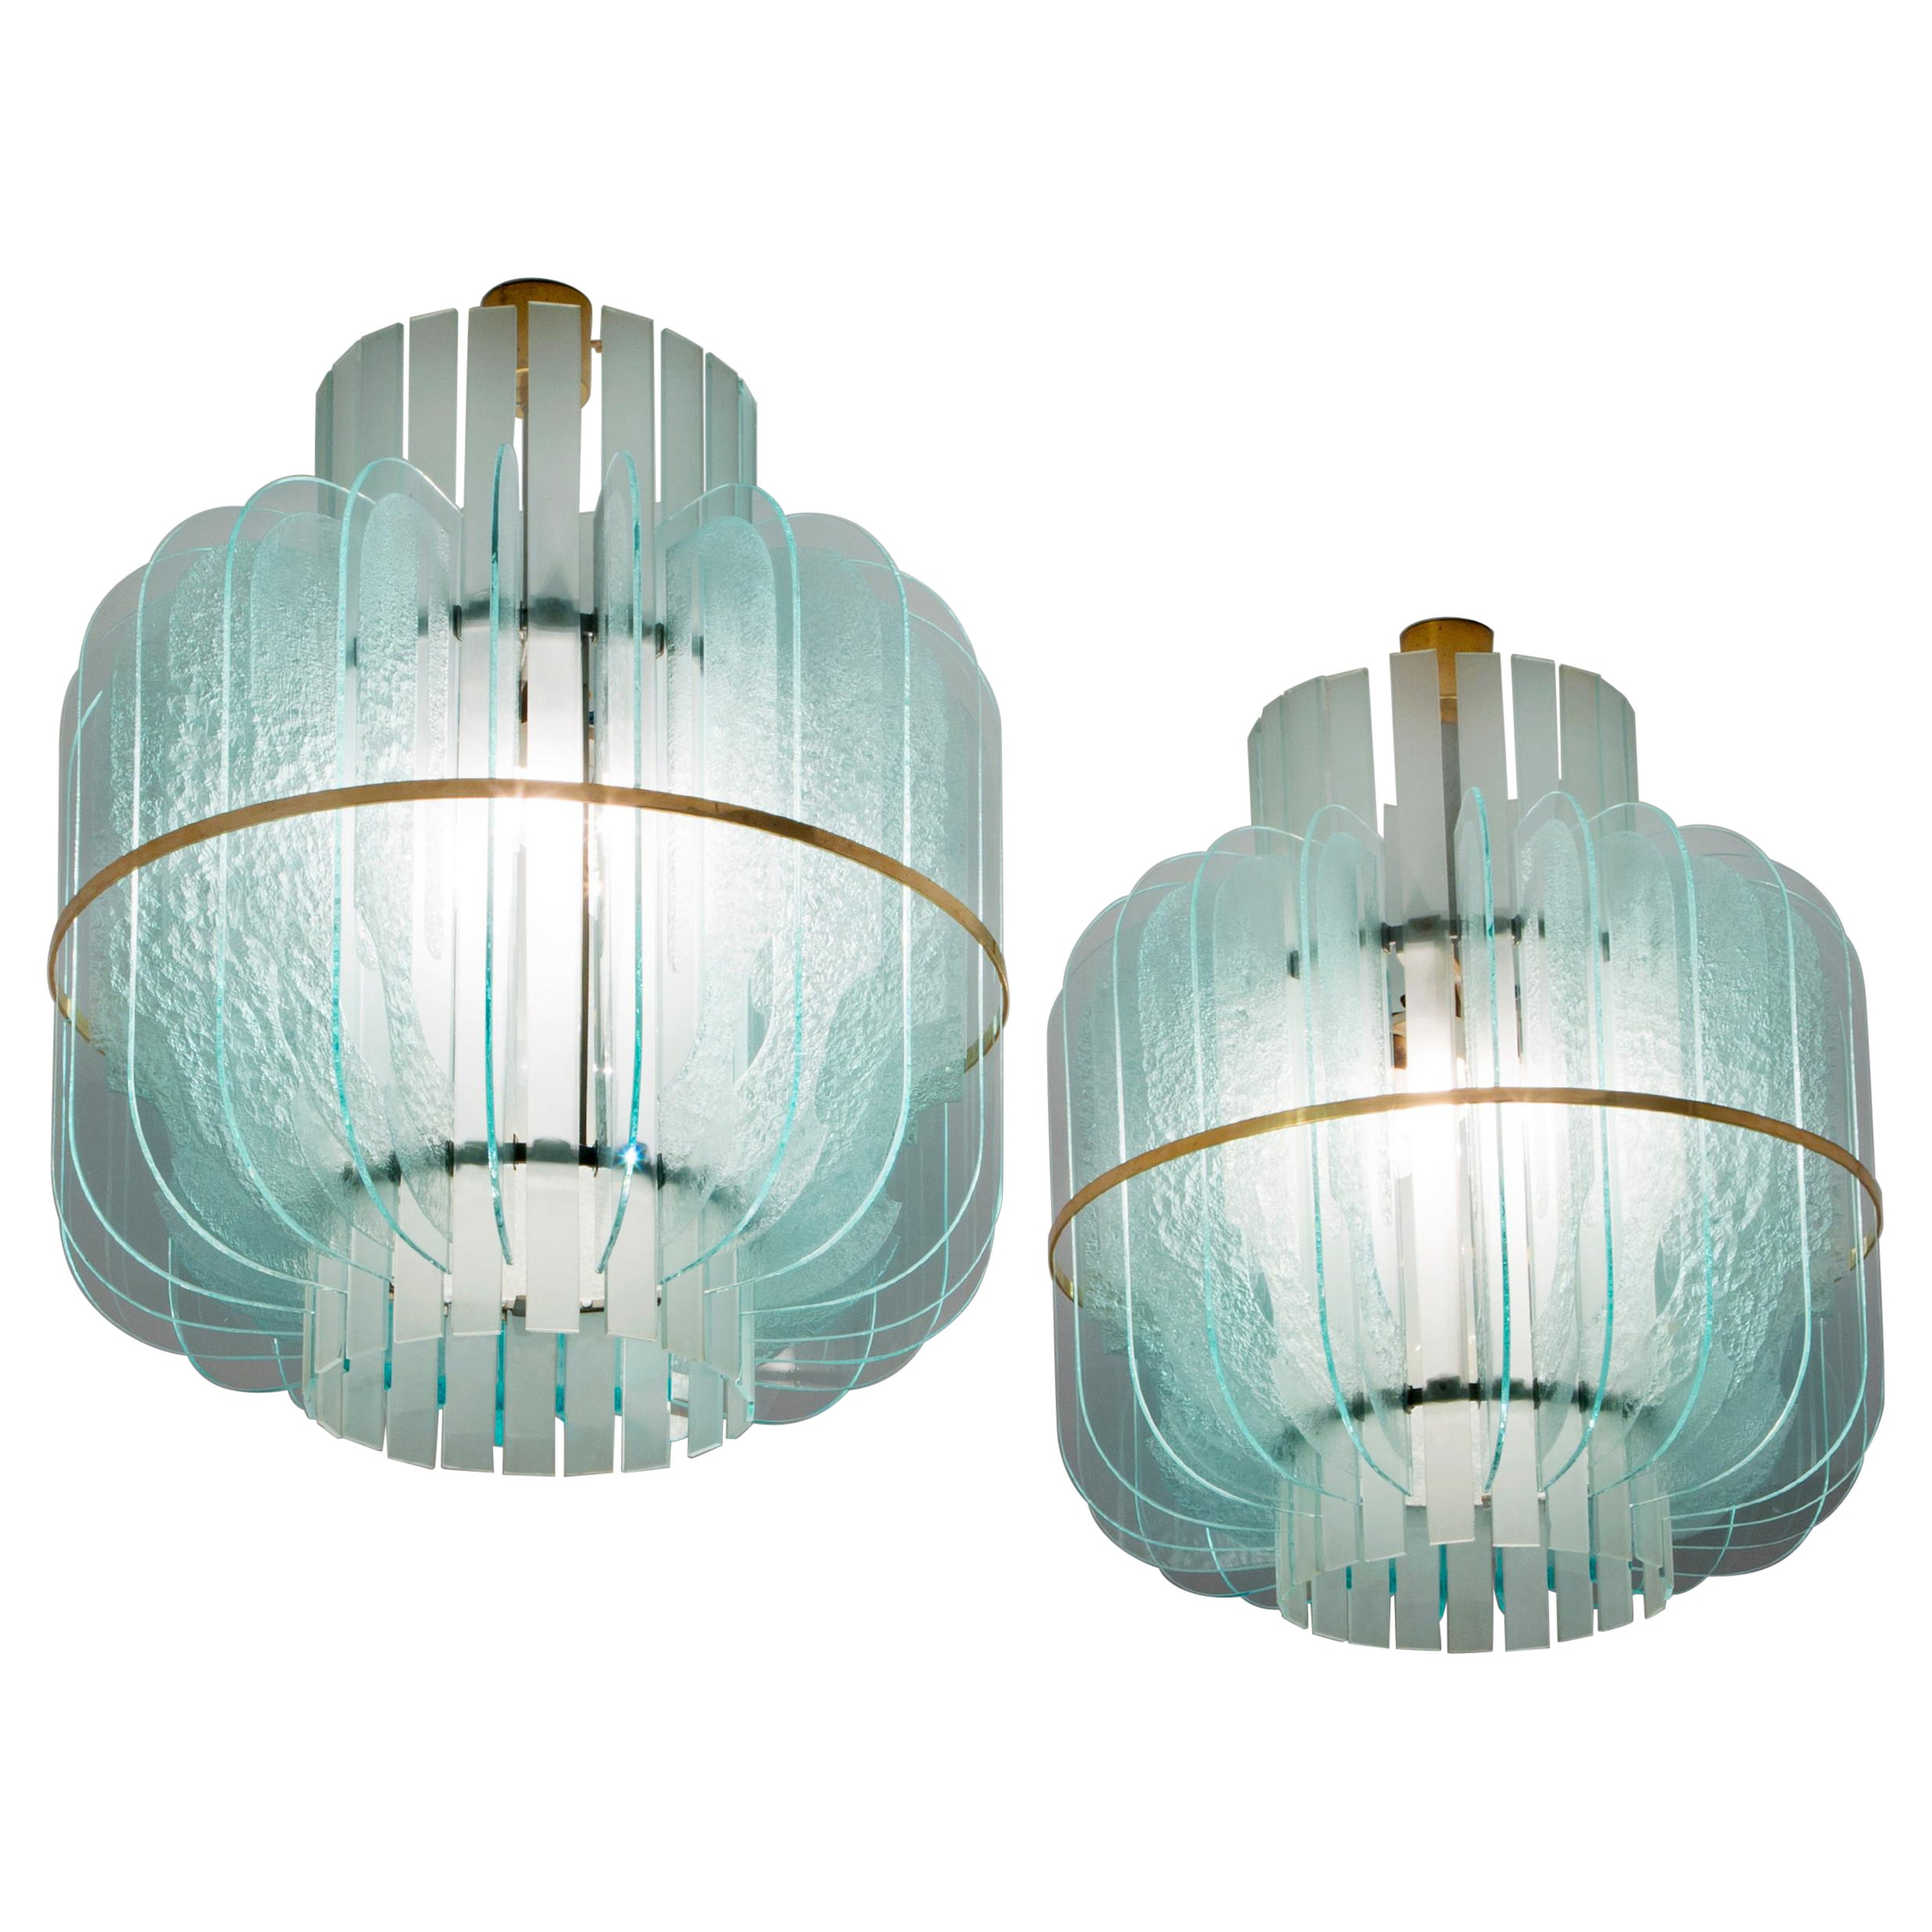 Cristal Arte Pendants with in Glass with Brass